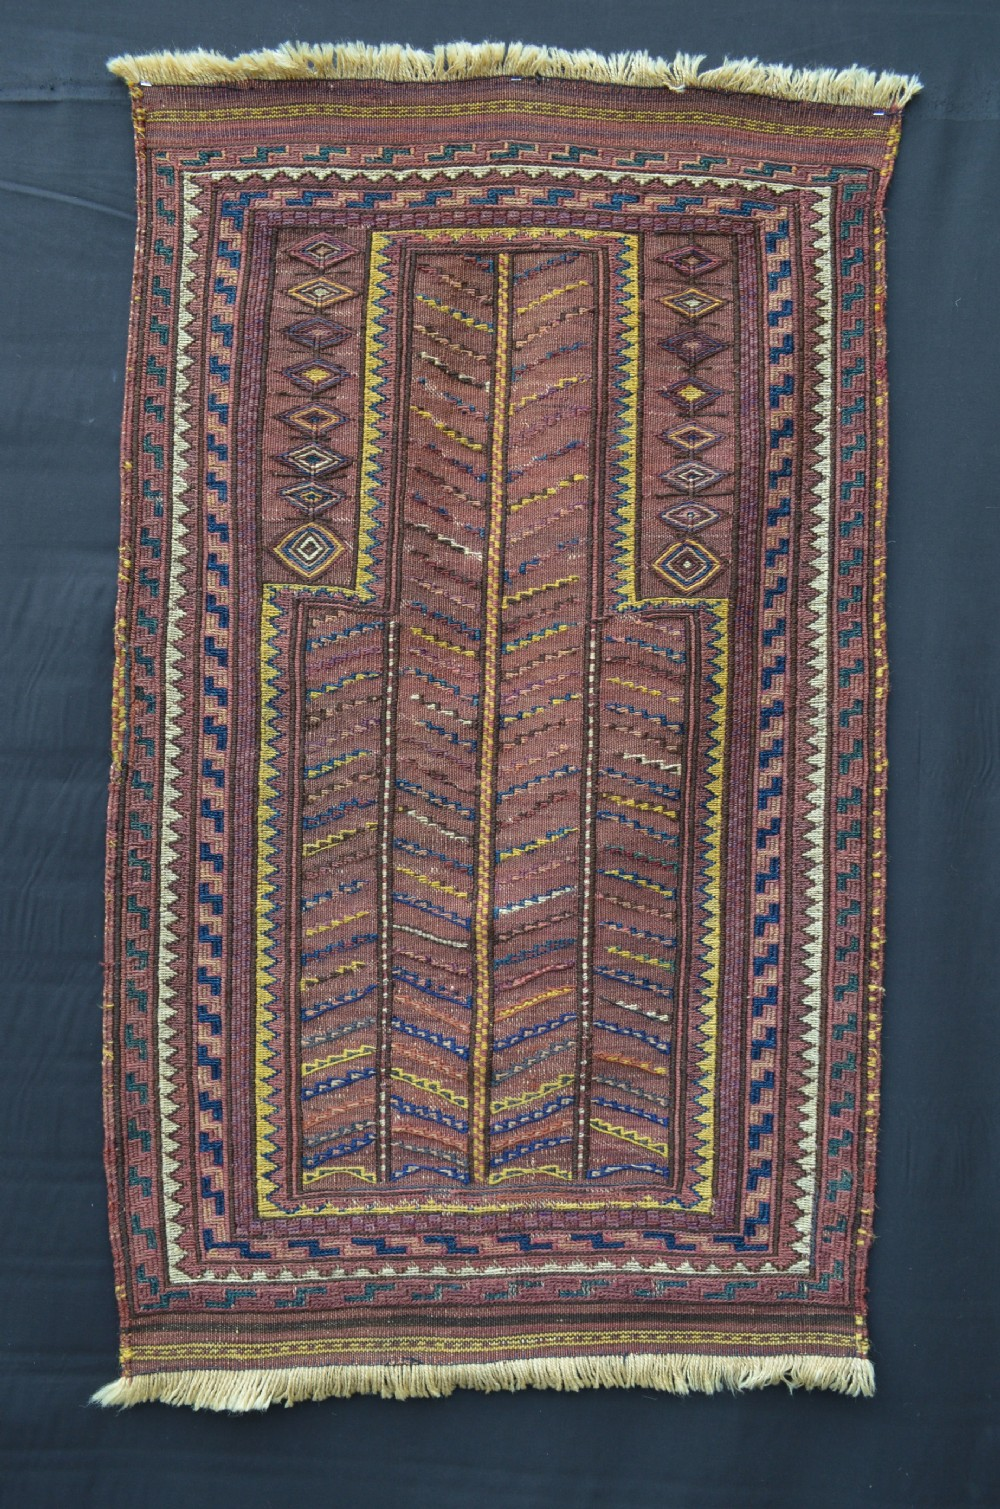 antique prayer flatweave kordi tribes quchan region khorassan northeast persia